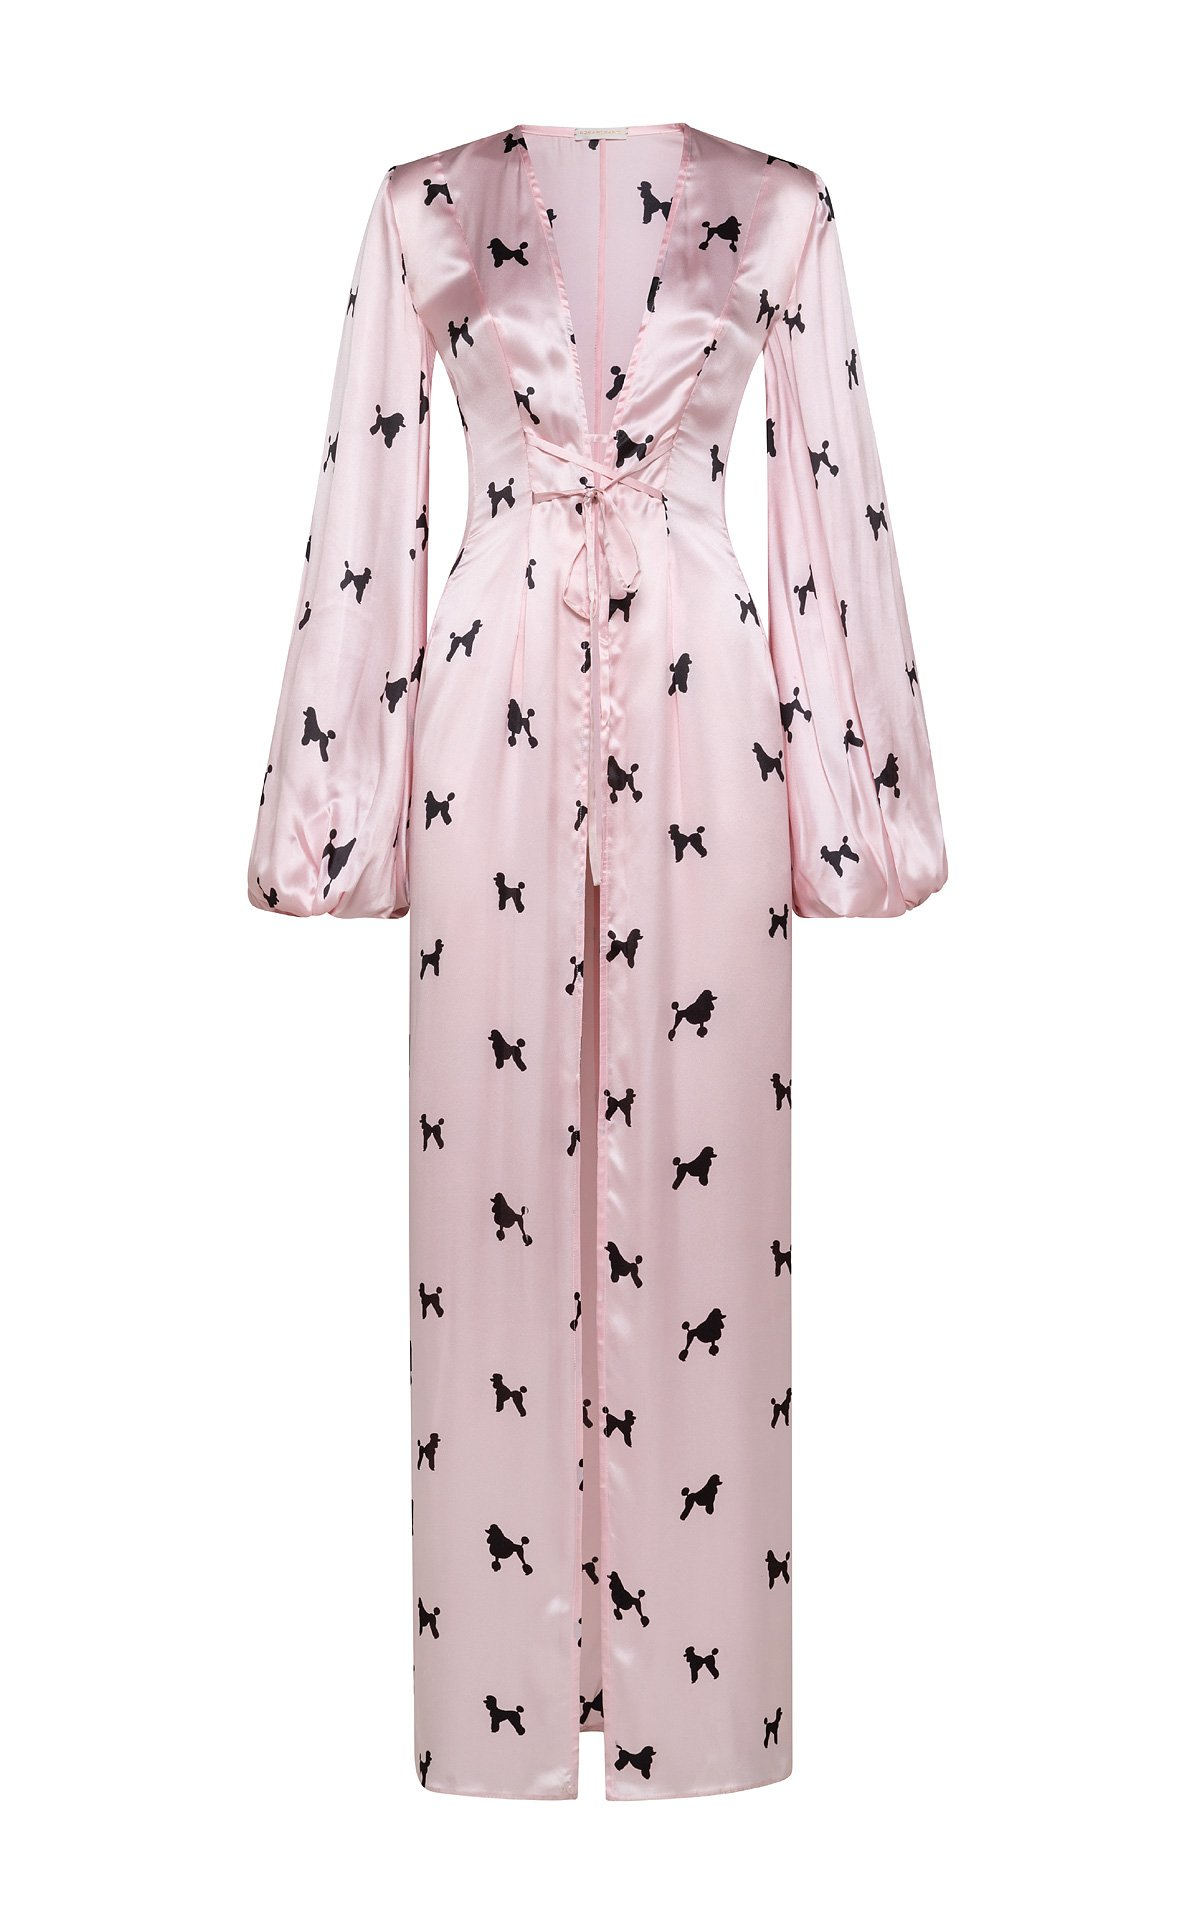 PINK-DOG-COLLECTION_ABITO_FRONTE